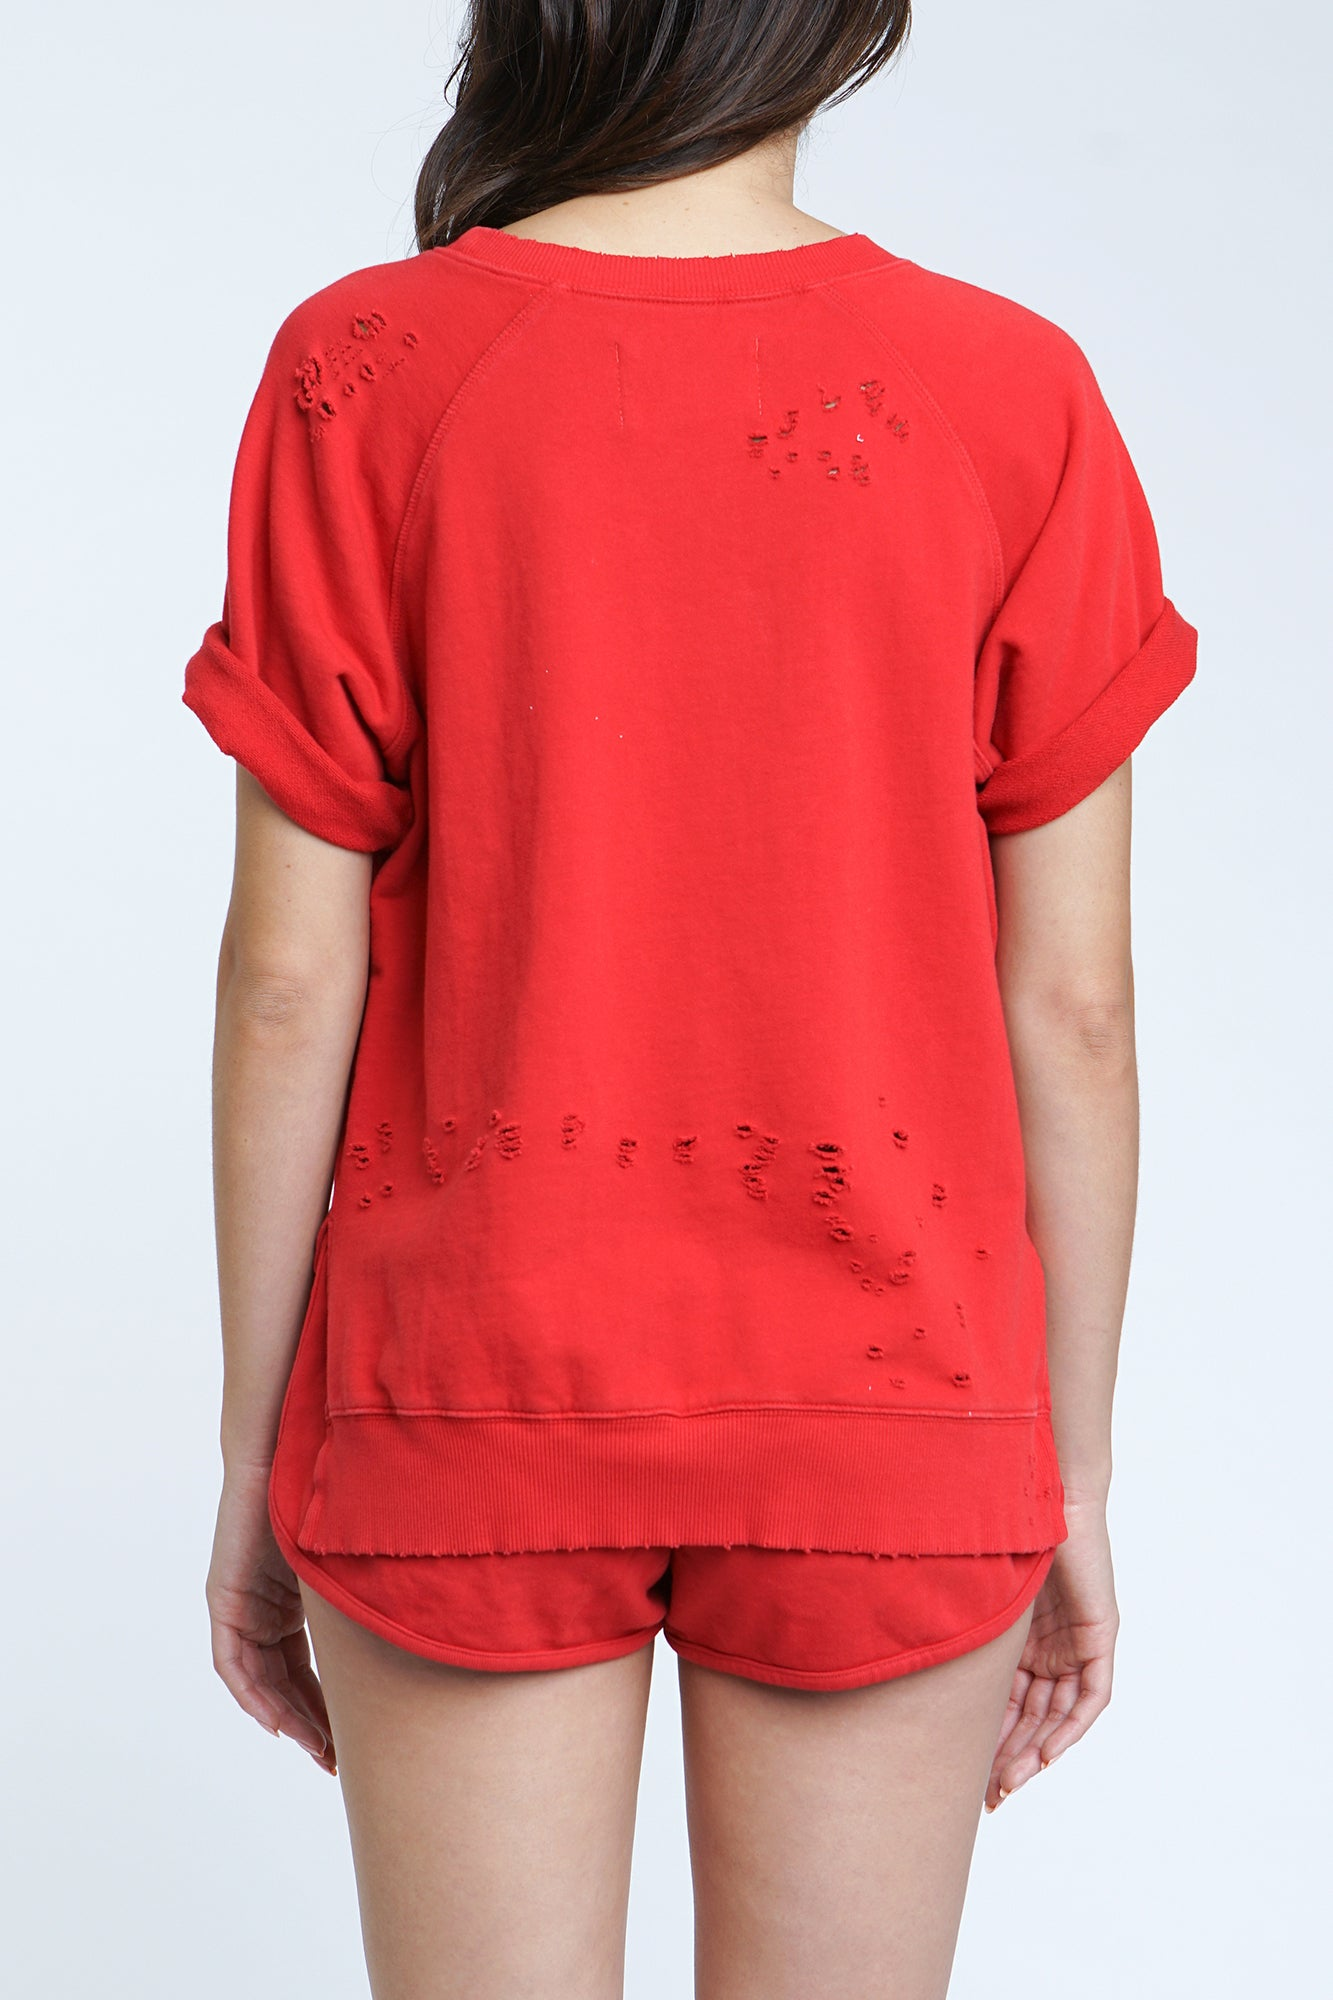 Raine Sweatshirt - Red Light